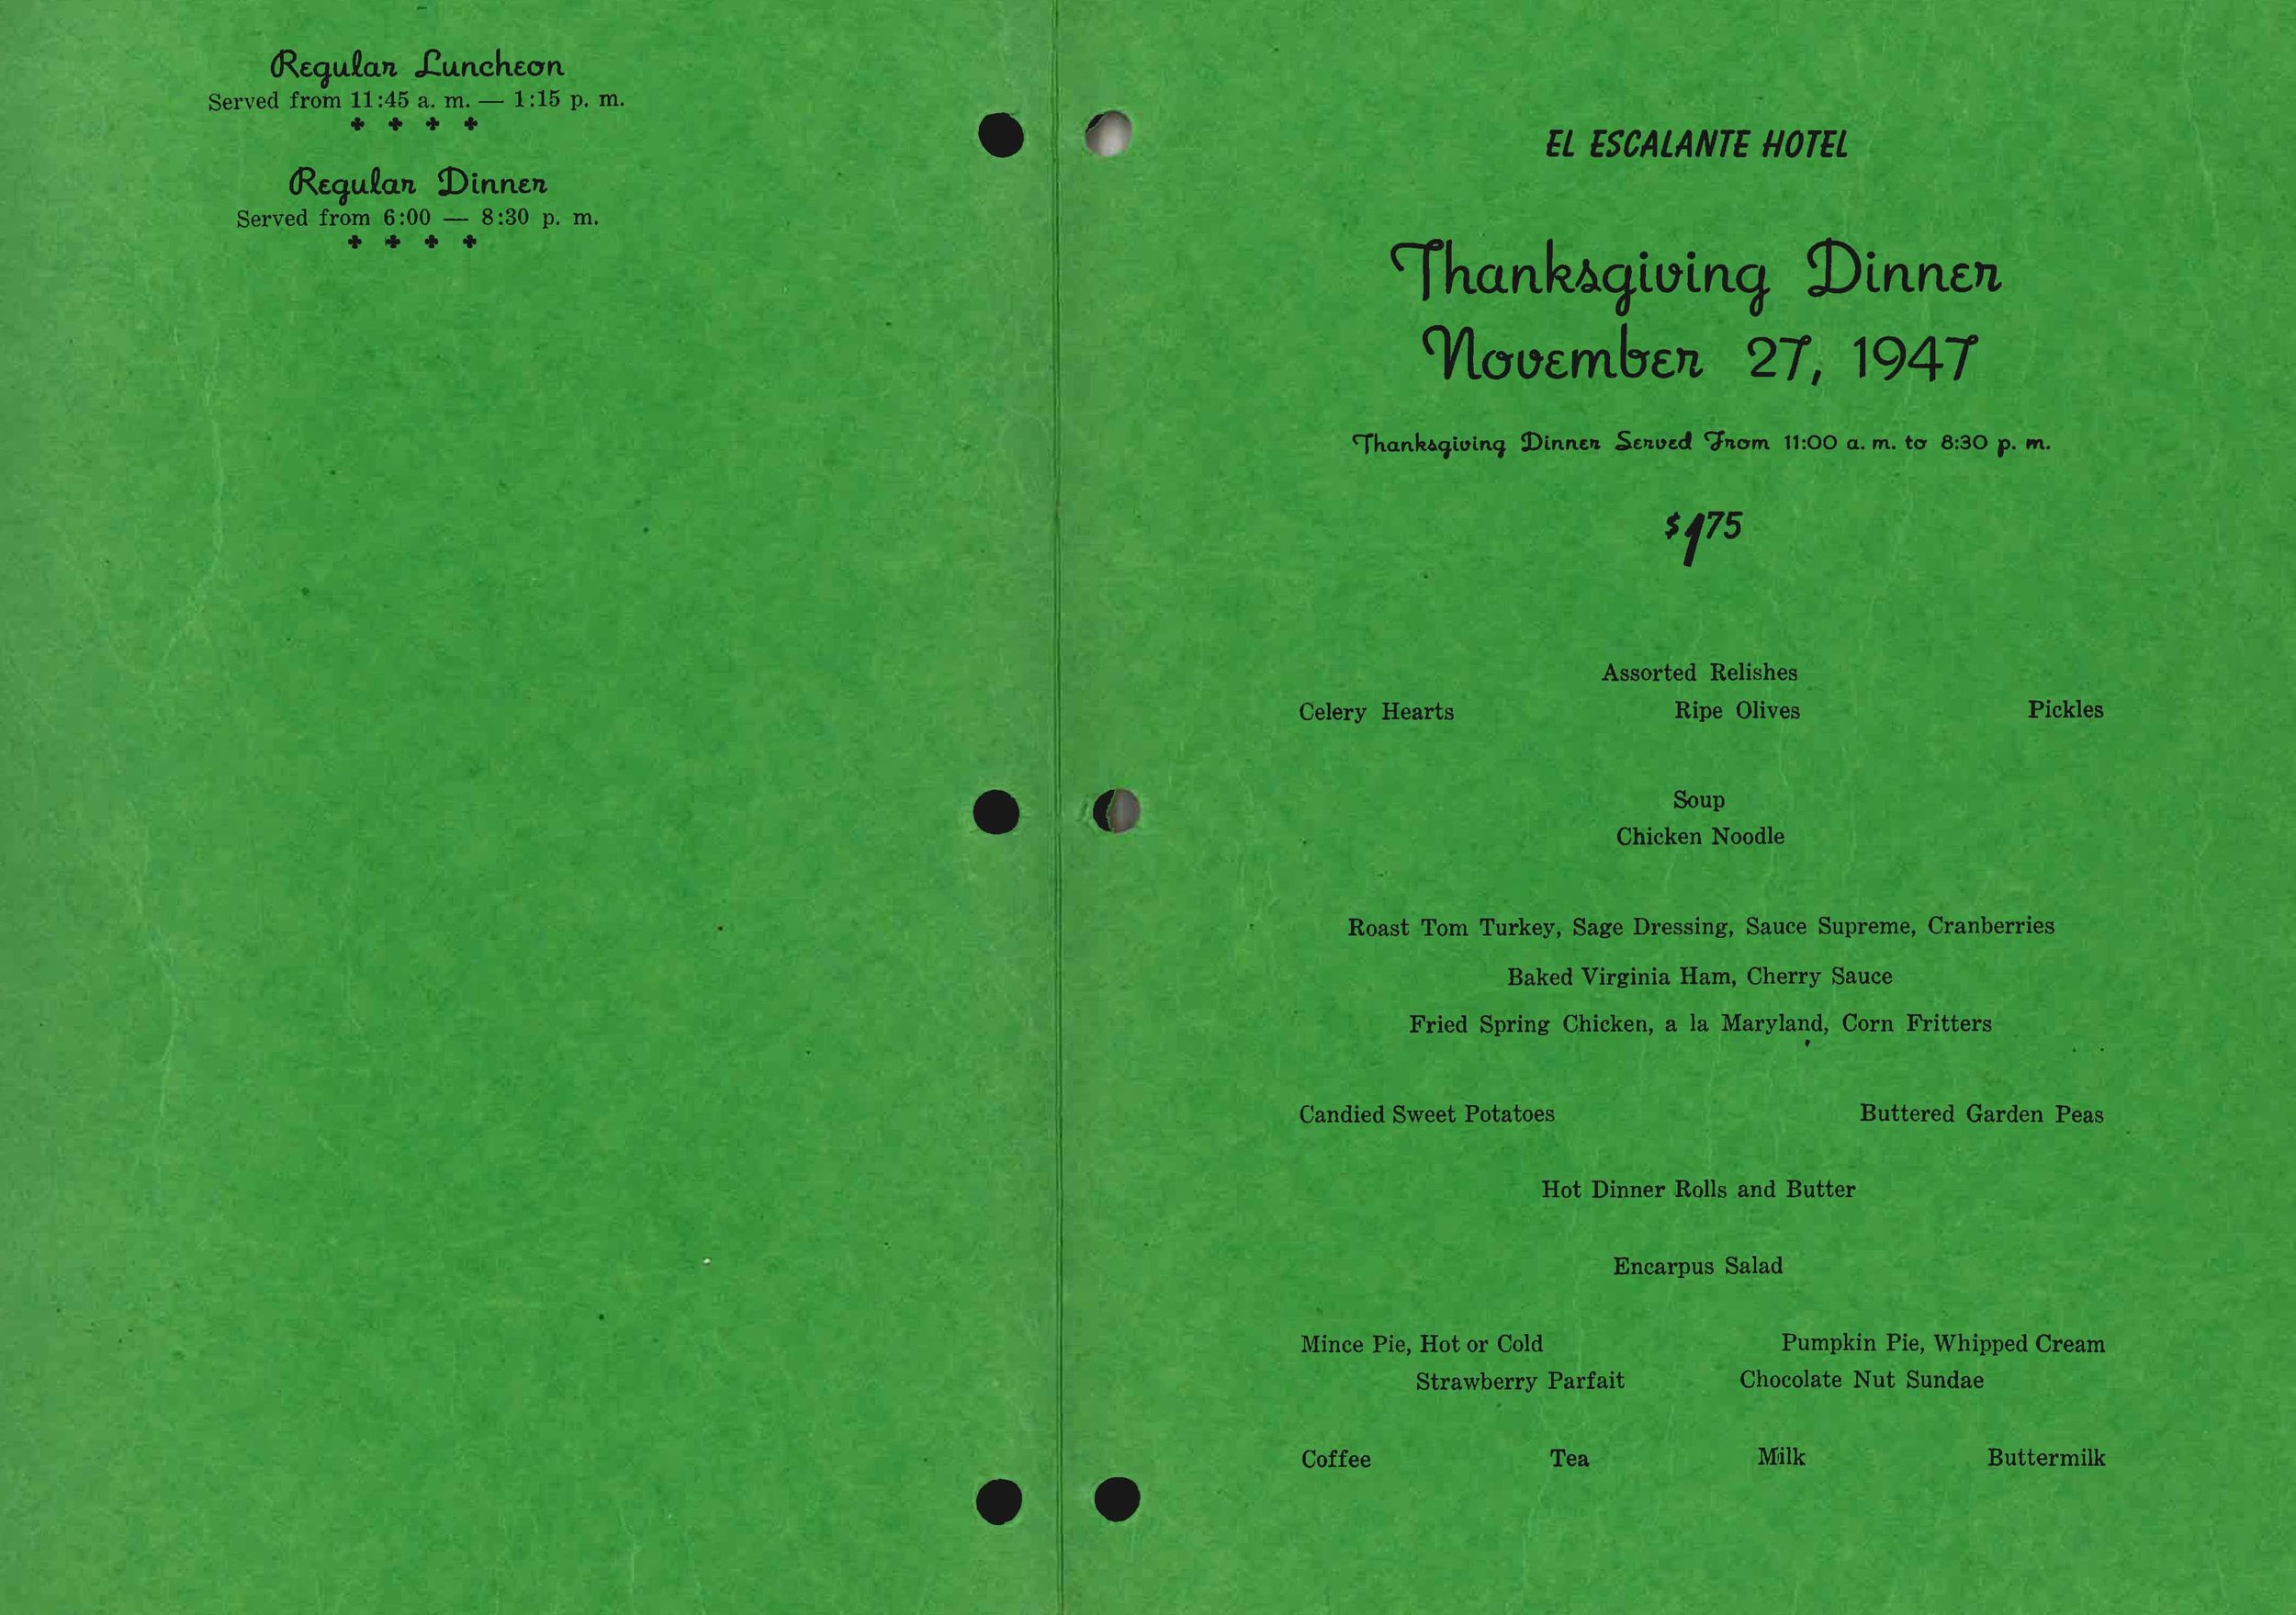 el-escalante-hotel-thanksgiving-menu-2